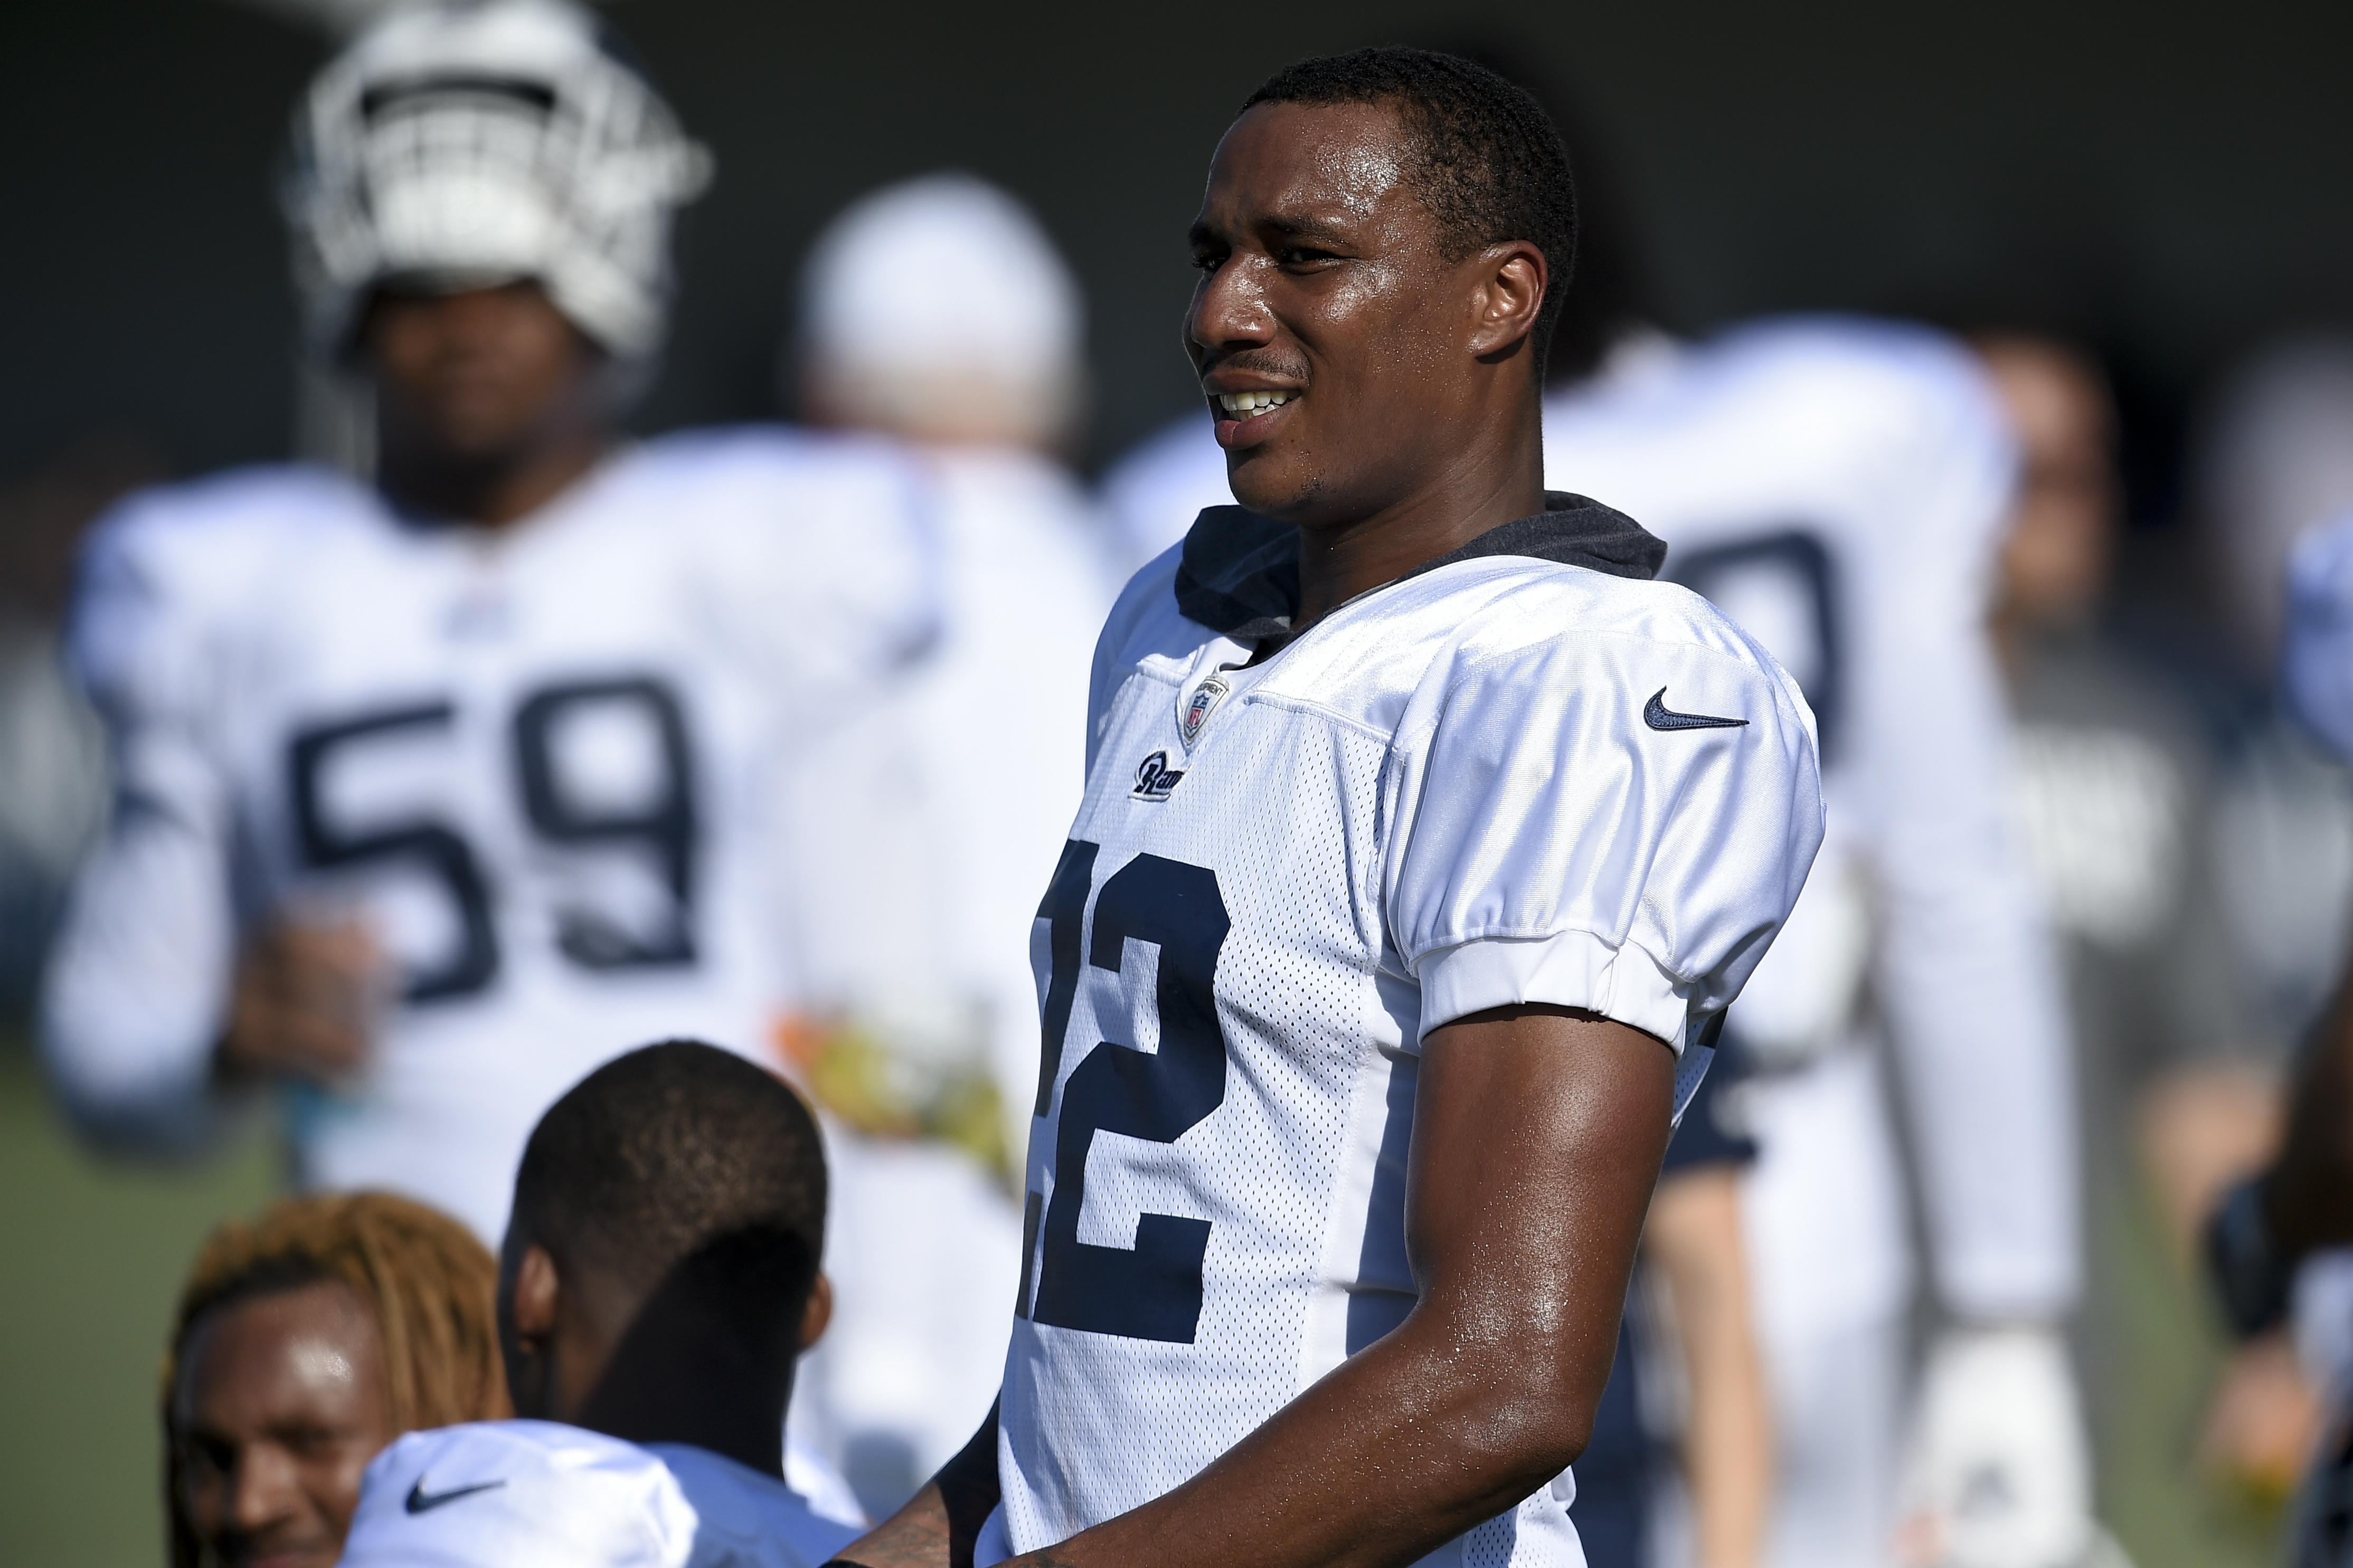 Baltimore Ravens' Marcus Peters discusses feelings after trade, mindset for Sunday and more